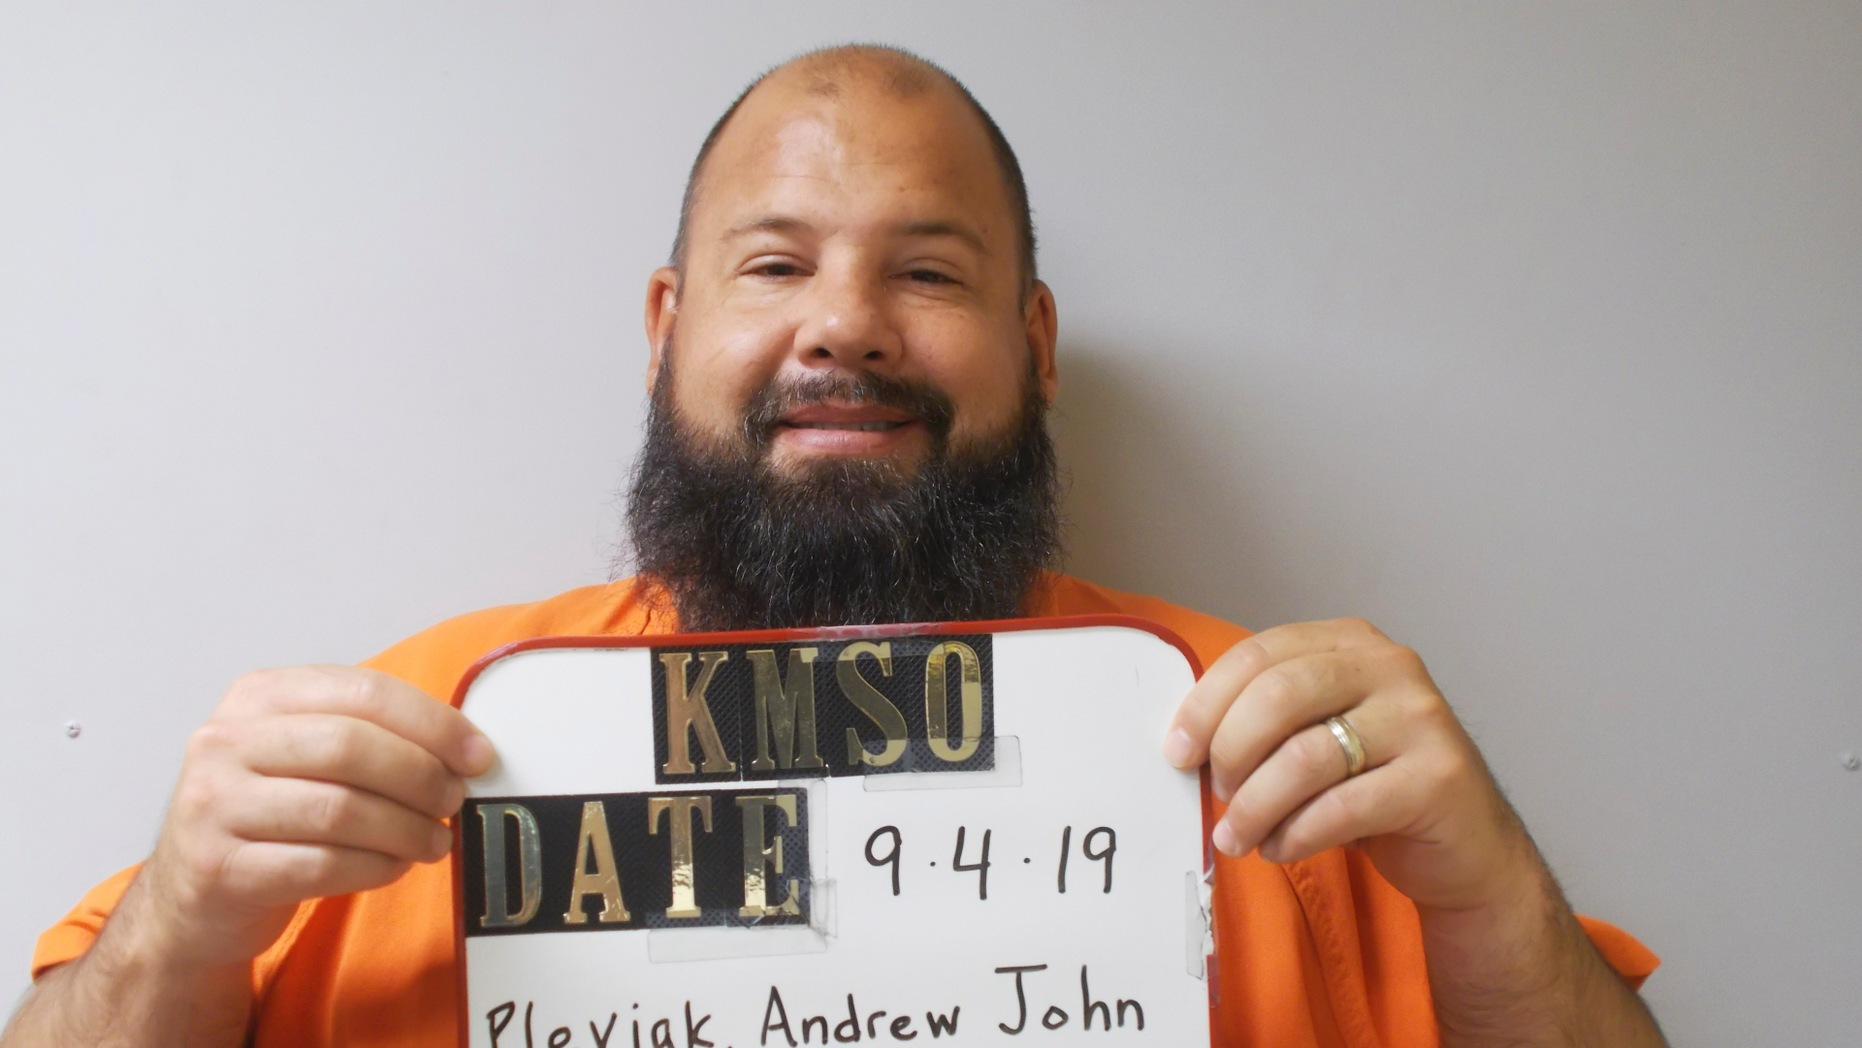 FILE -This Sept. 4, 2019 booking photo provided by the Kingman County Sheriff's Office shows Andrew John Pleviak.   The former agent with U.S. Immigration and Customs Enforcement has pleaded guilty to helping an inmate try to escape from a Kansas jail by impersonating an immigration officer. Pleviak pleaded guilty Wednesday, Oct. 16,  in Kingman County District Court to making false information and attempted aiding of escape. He's also charged in federal court with false impersonation of a federal officer. (Kingman County Sheriff's Office via AP)